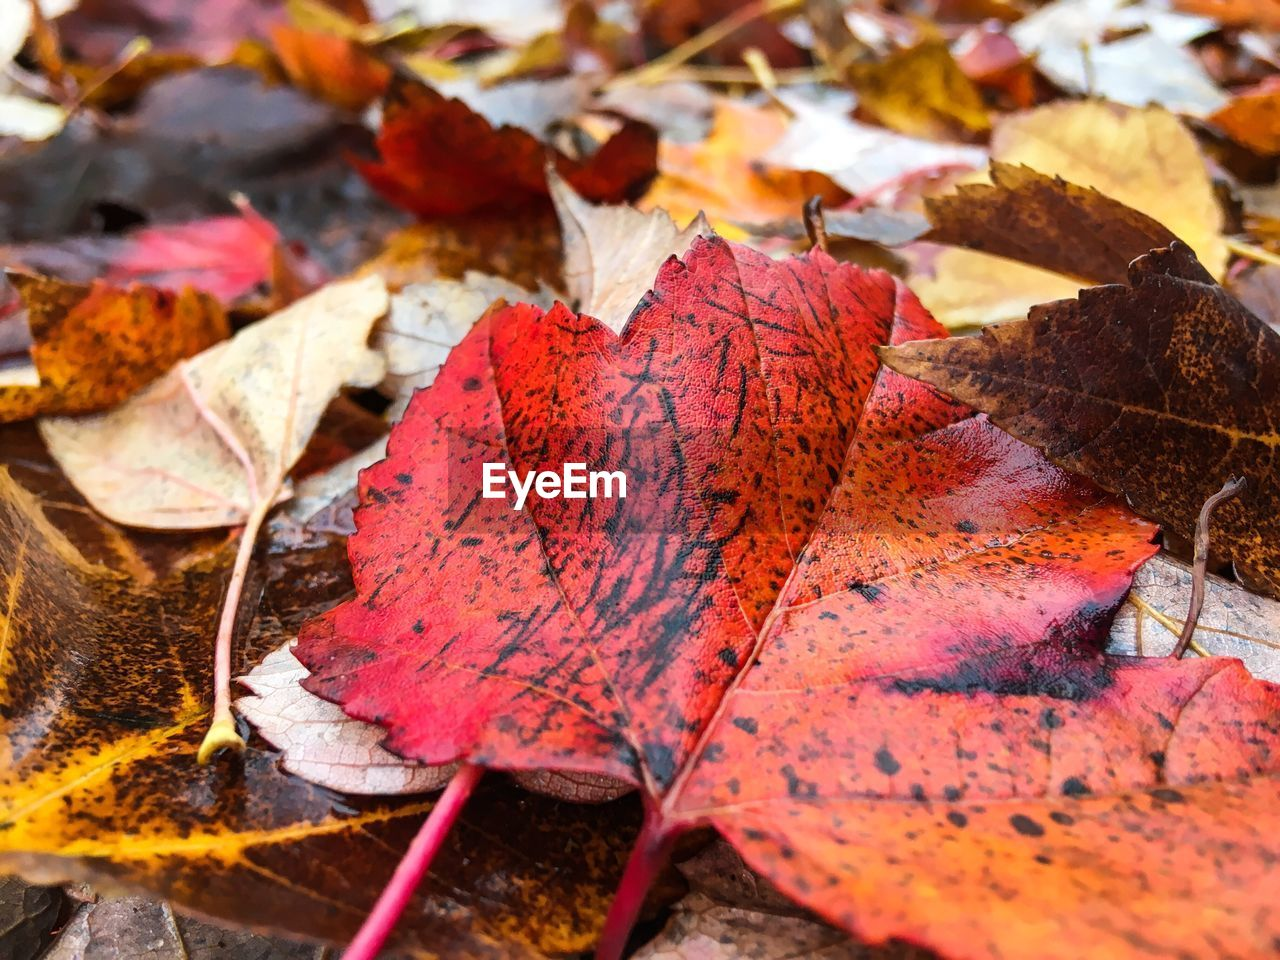 autumn, leaf, plant part, change, dry, leaves, close-up, falling, nature, no people, beauty in nature, day, maple leaf, red, orange color, plant, outdoors, vulnerability, leaf vein, field, natural condition, maple tree, fall, autumn collection